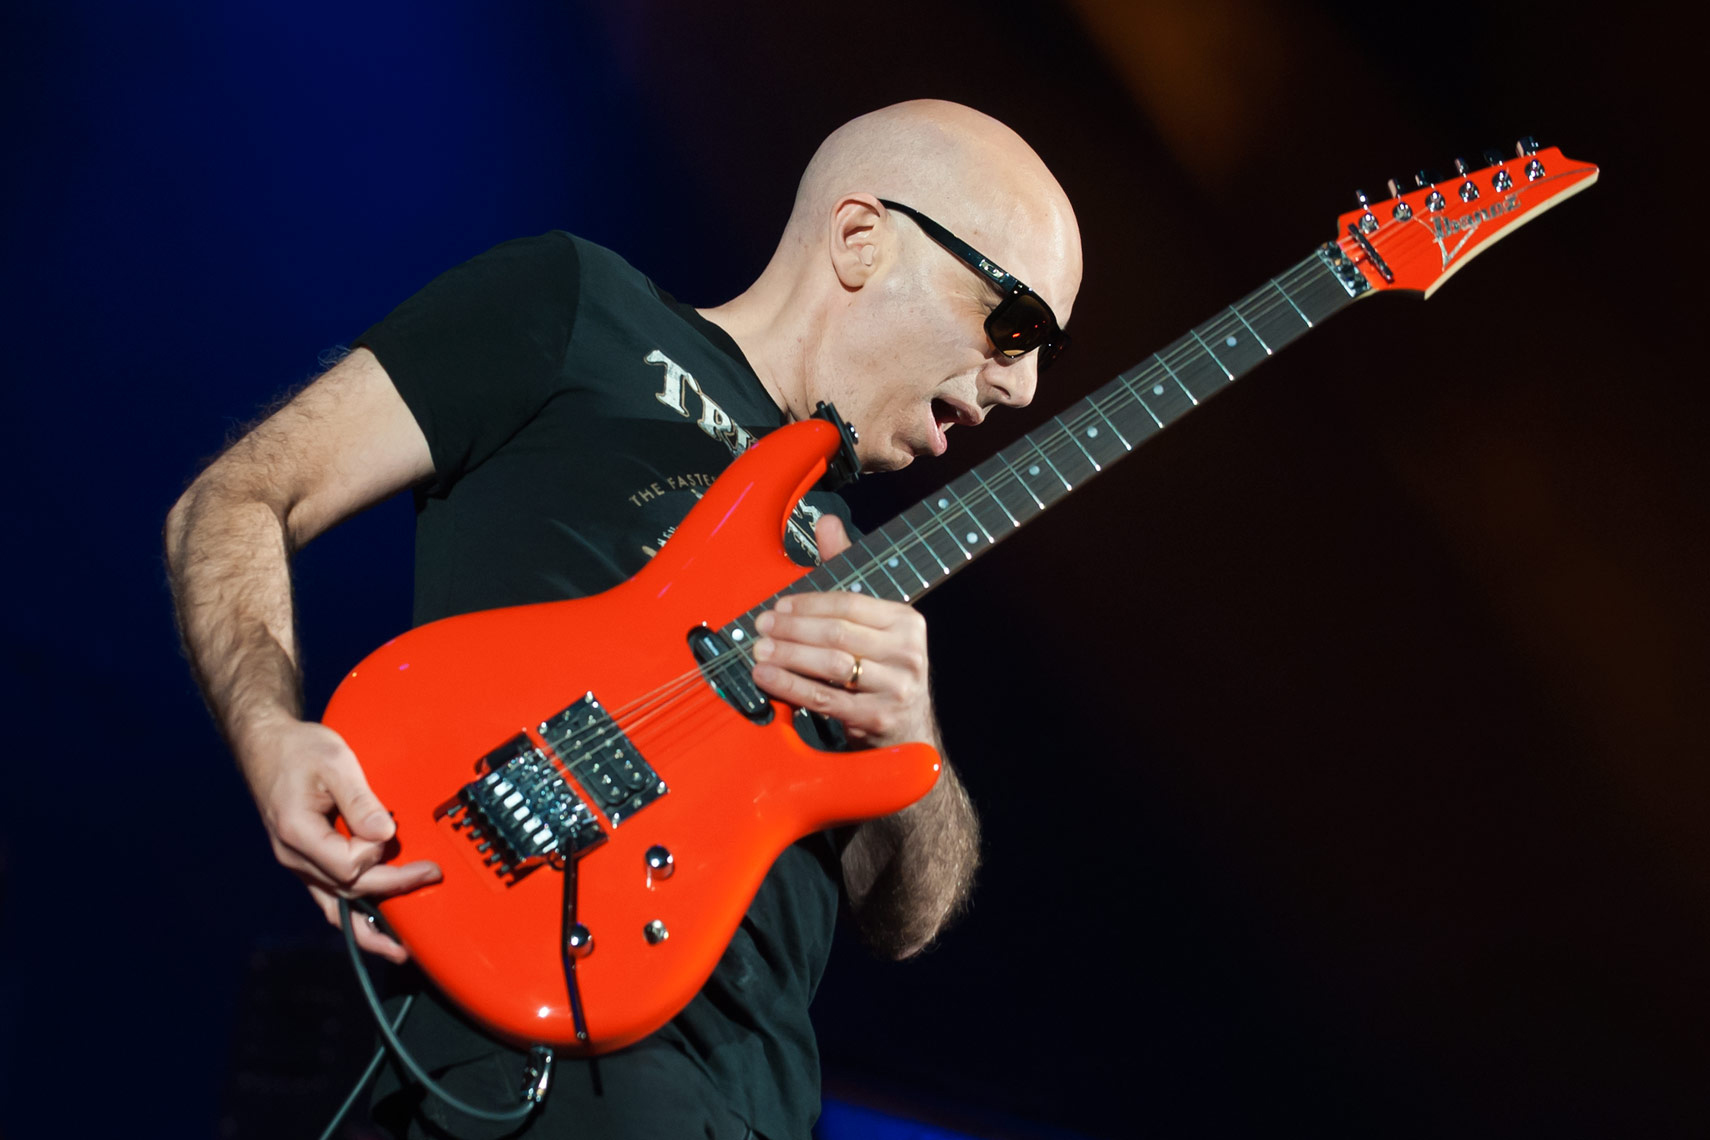 Joe-Satriani-Hammersmith-Apollo.jpg